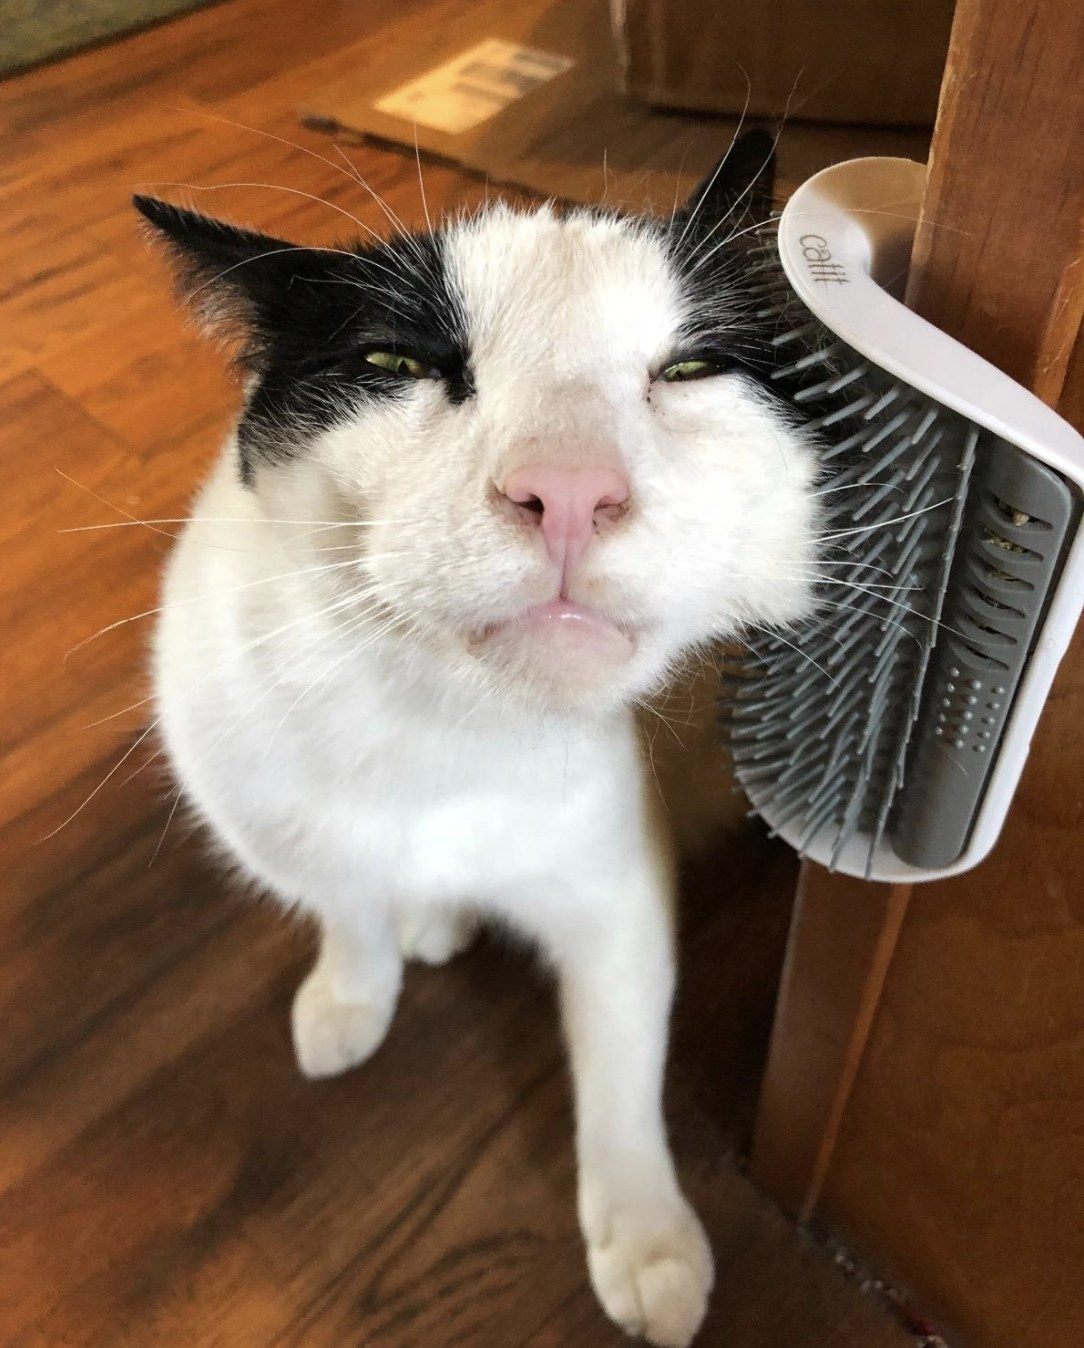 a white and black cat scratching its cheek on a self groomer toy adhered to a corner